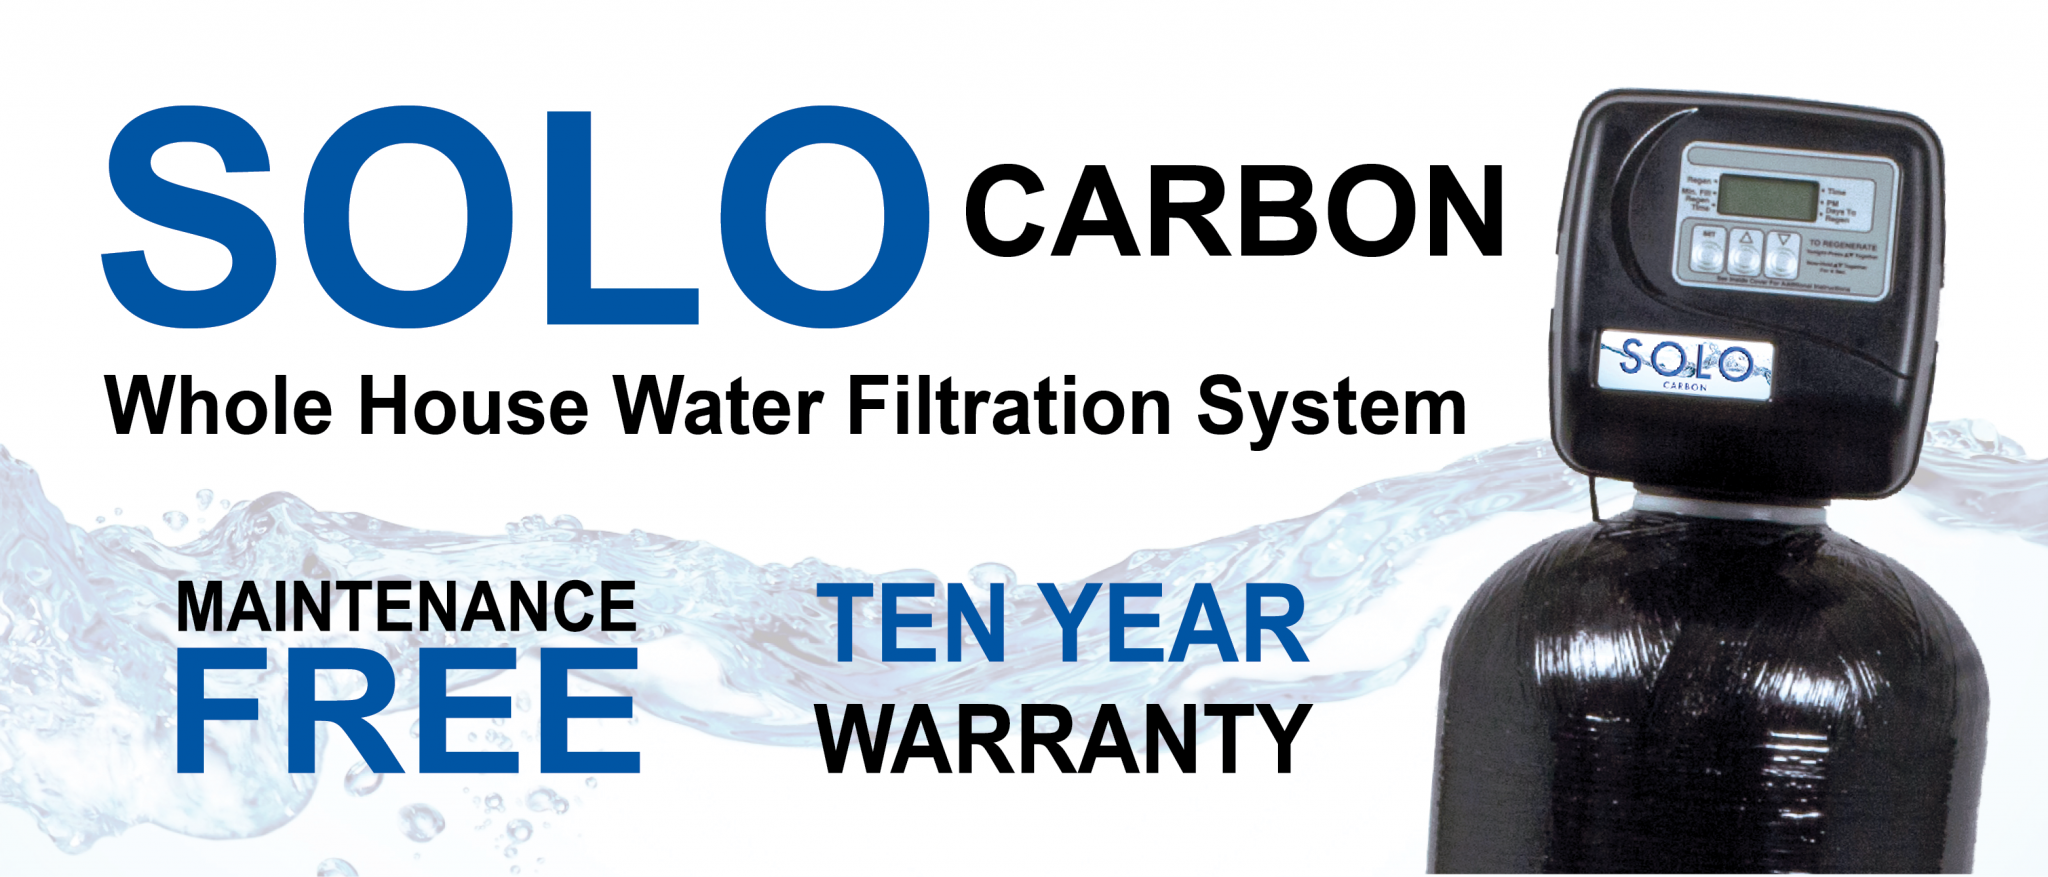 MAINTENANCE FREE WHOLE HOUSE WATER FILTRATION